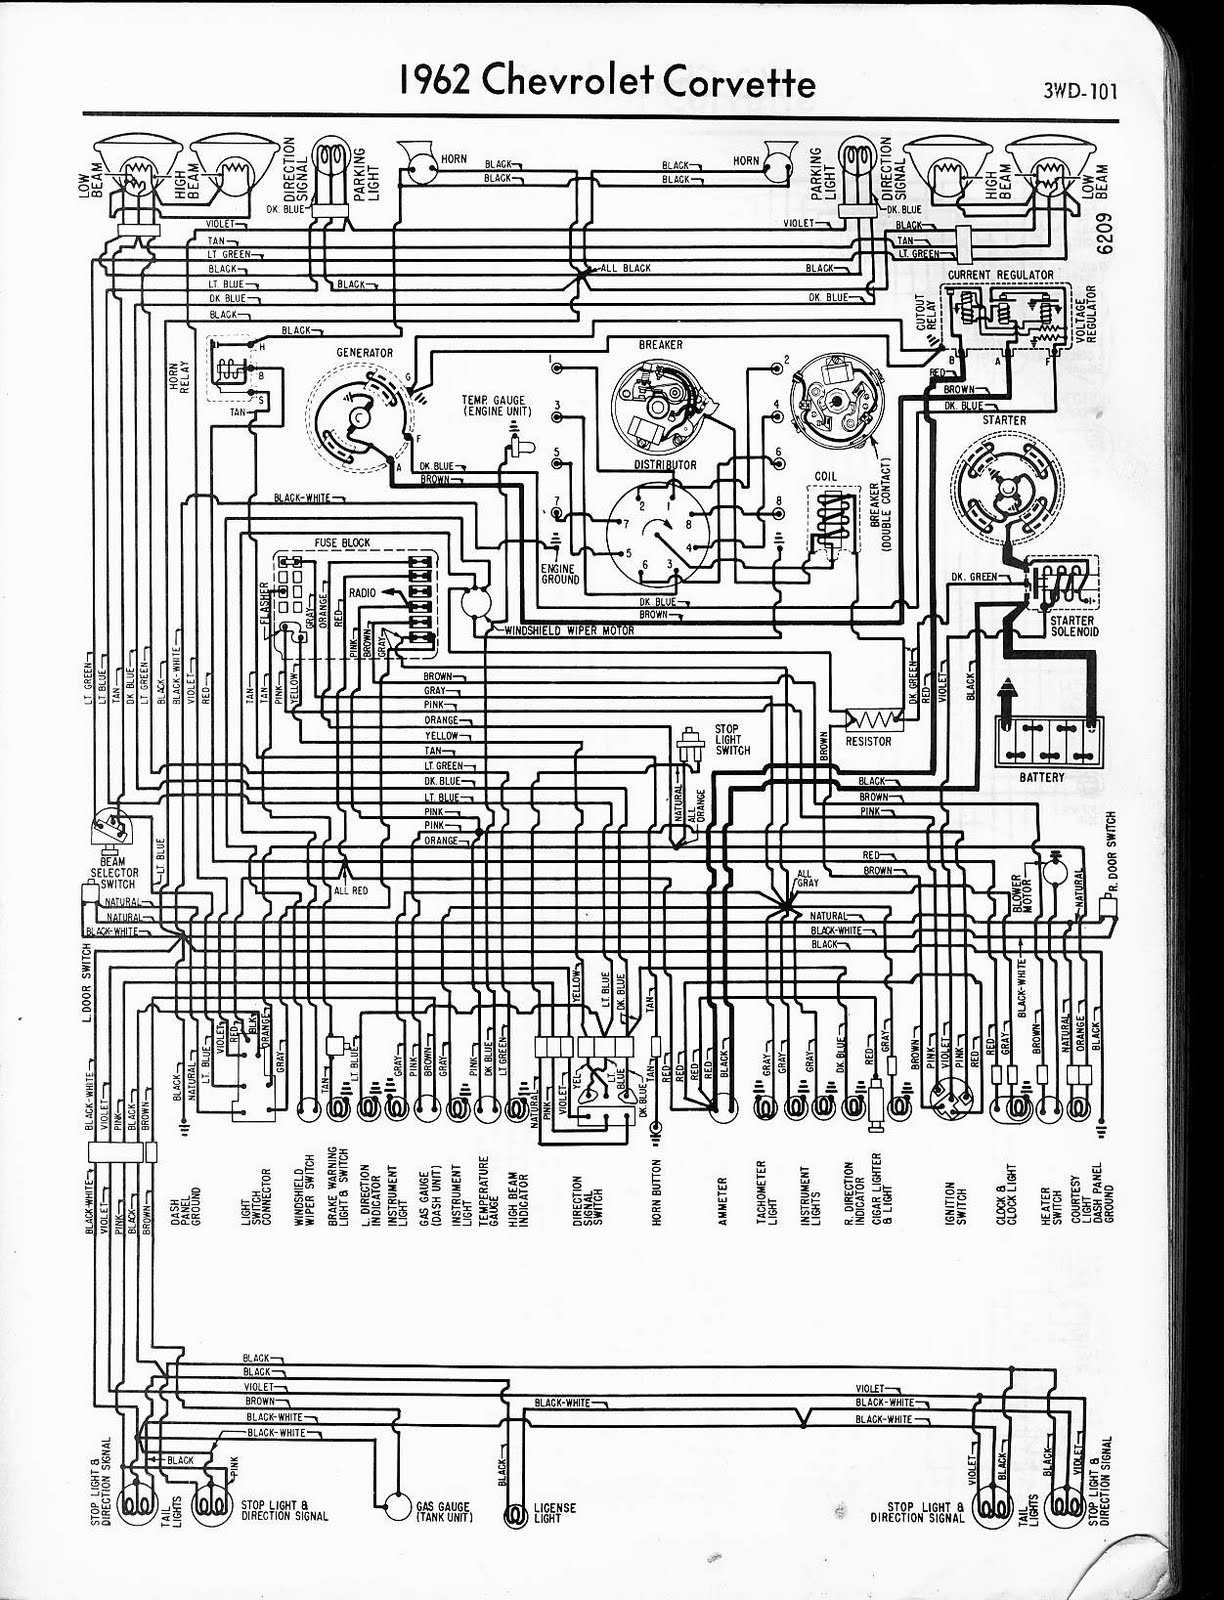 1965 Corvette Wiring Schematic Auto Electrical Wiring Diagram 1980 Corvette  Fuse Box Wiring Diagram 1982 Corvette Wiring Diagram